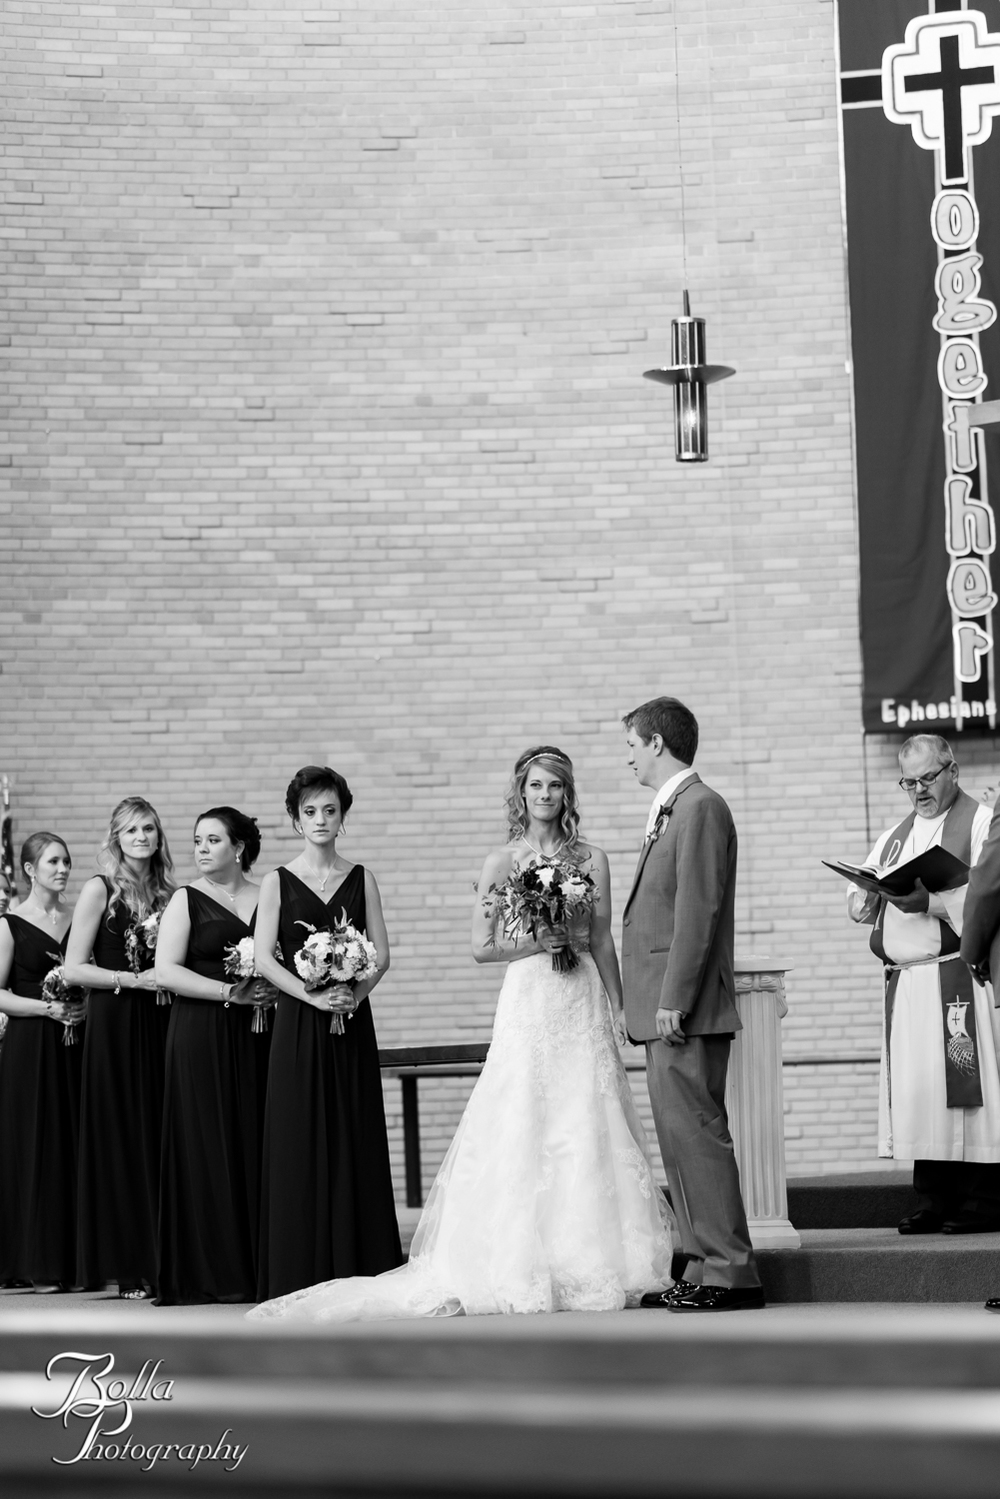 Bolla_Photography_St_Louis_wedding_photographer-0187.jpg